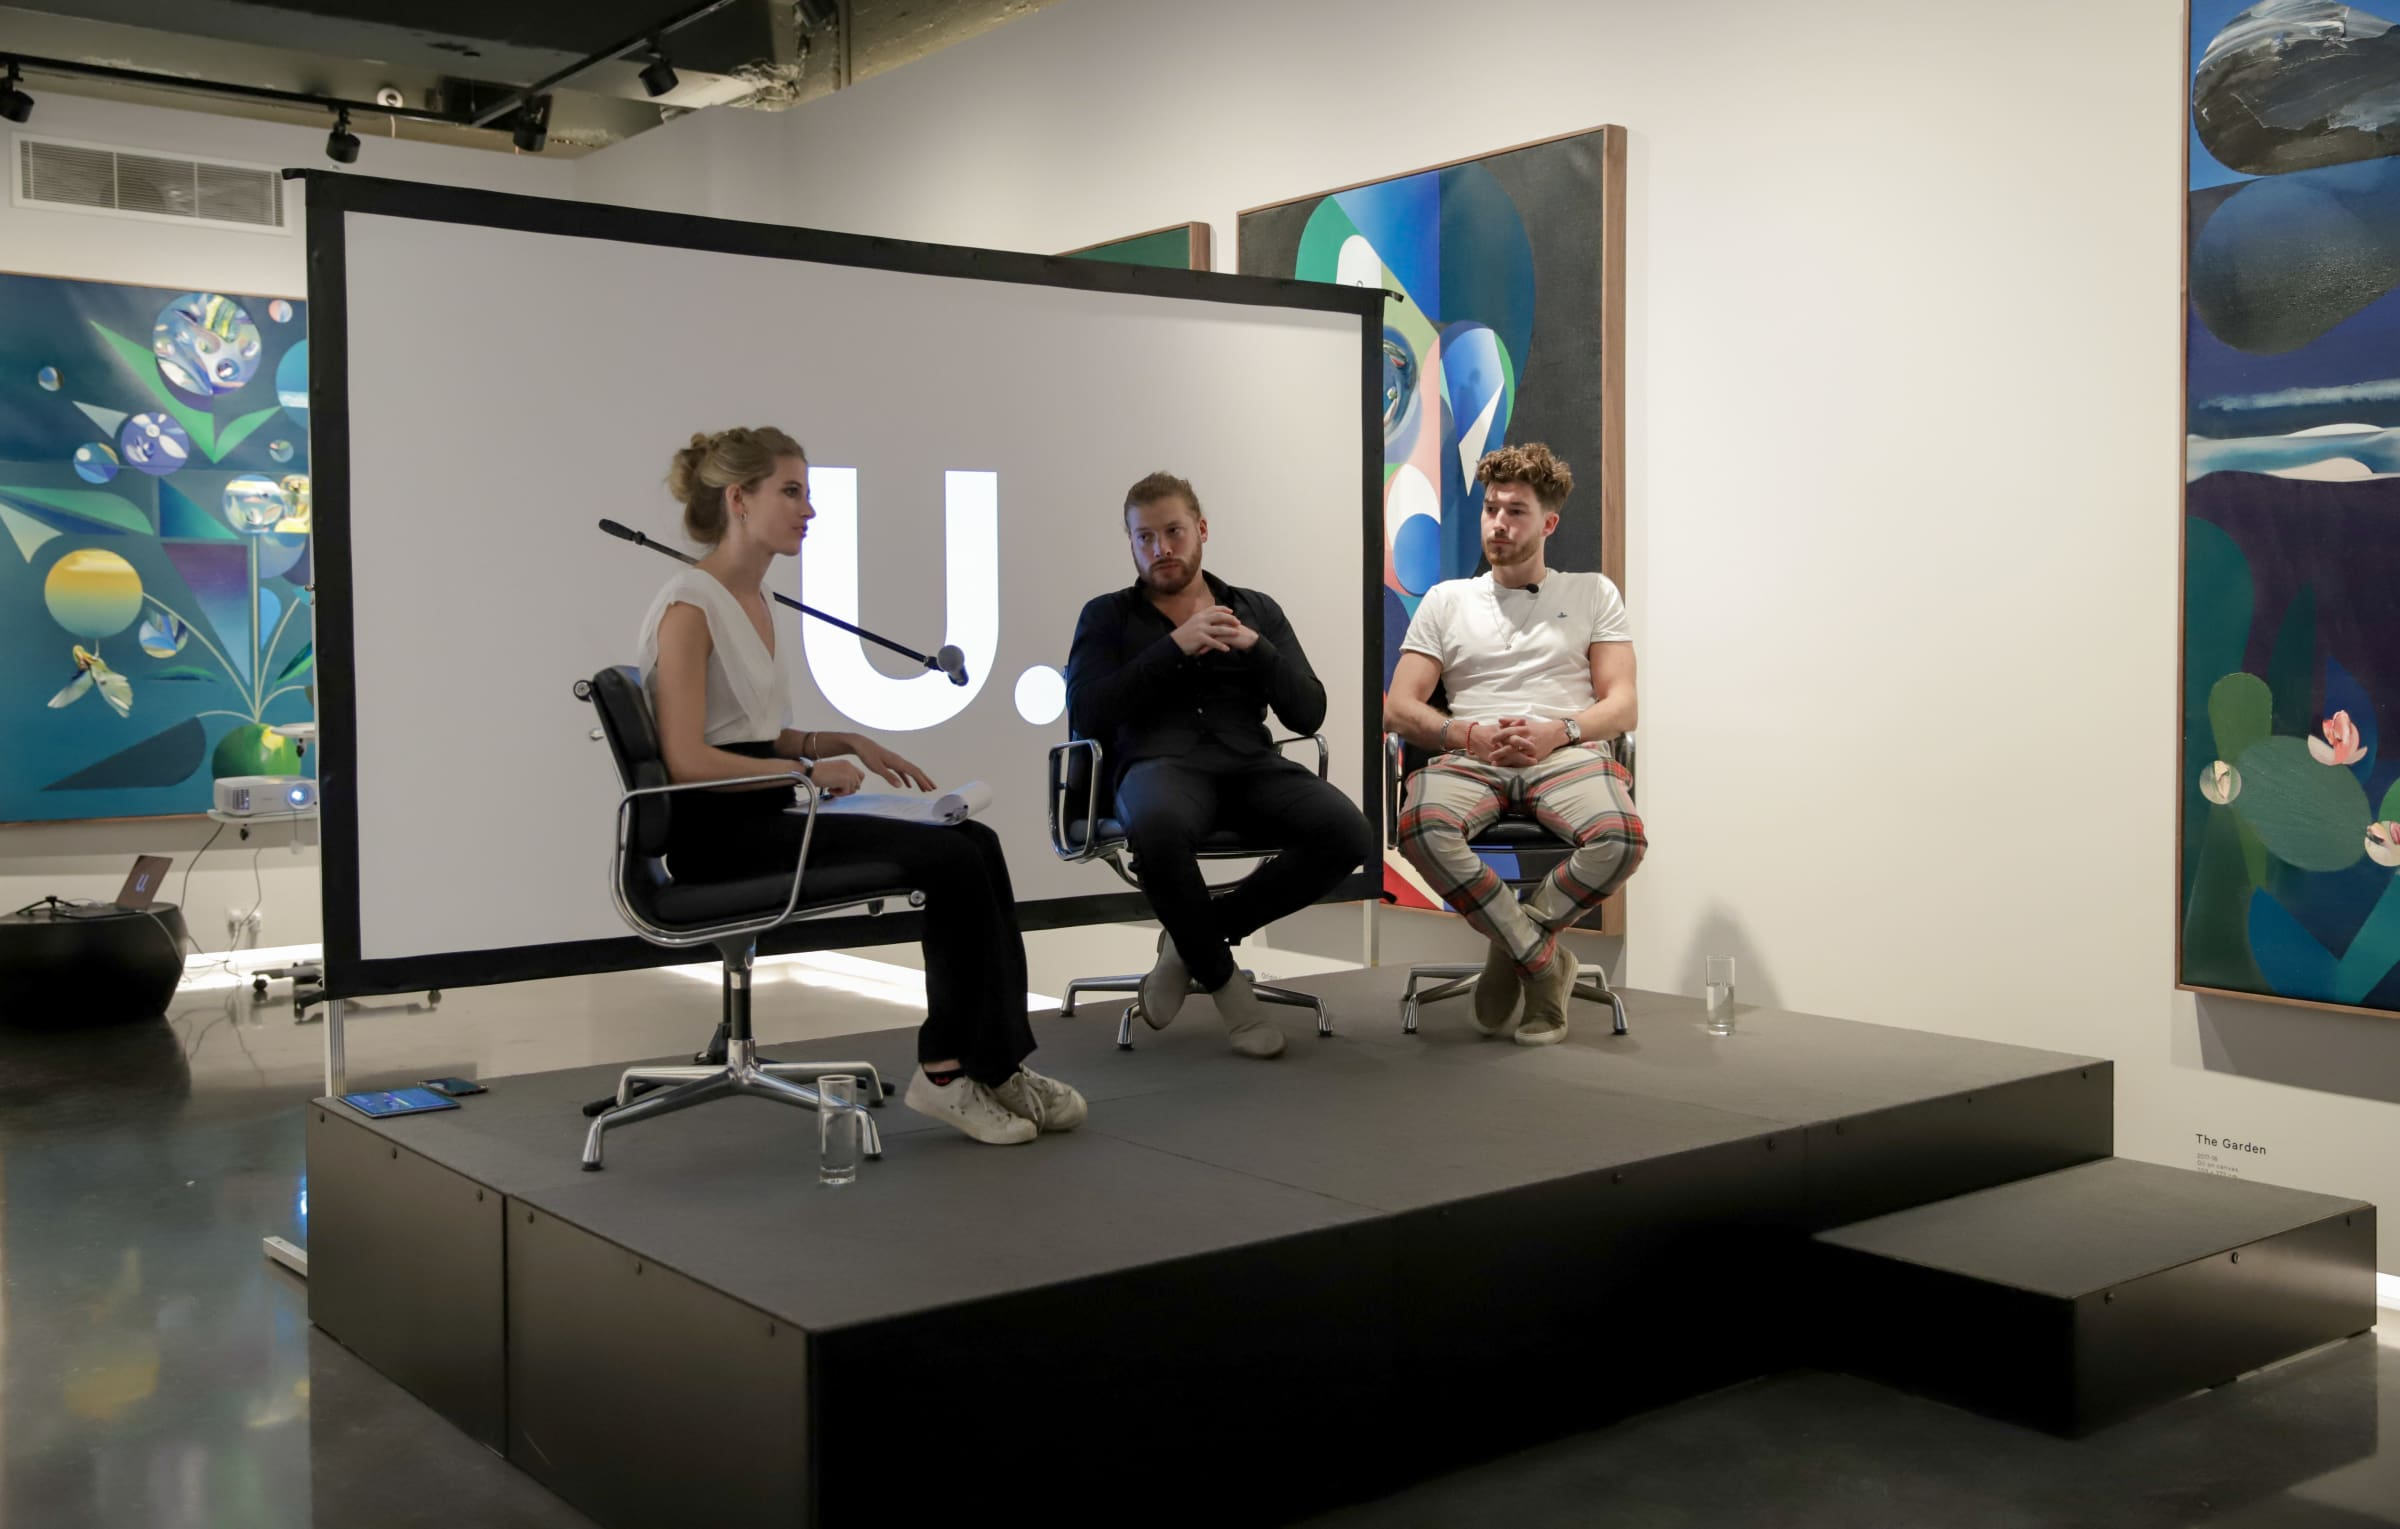 Unit London x Culture Whisper: Q&A Session